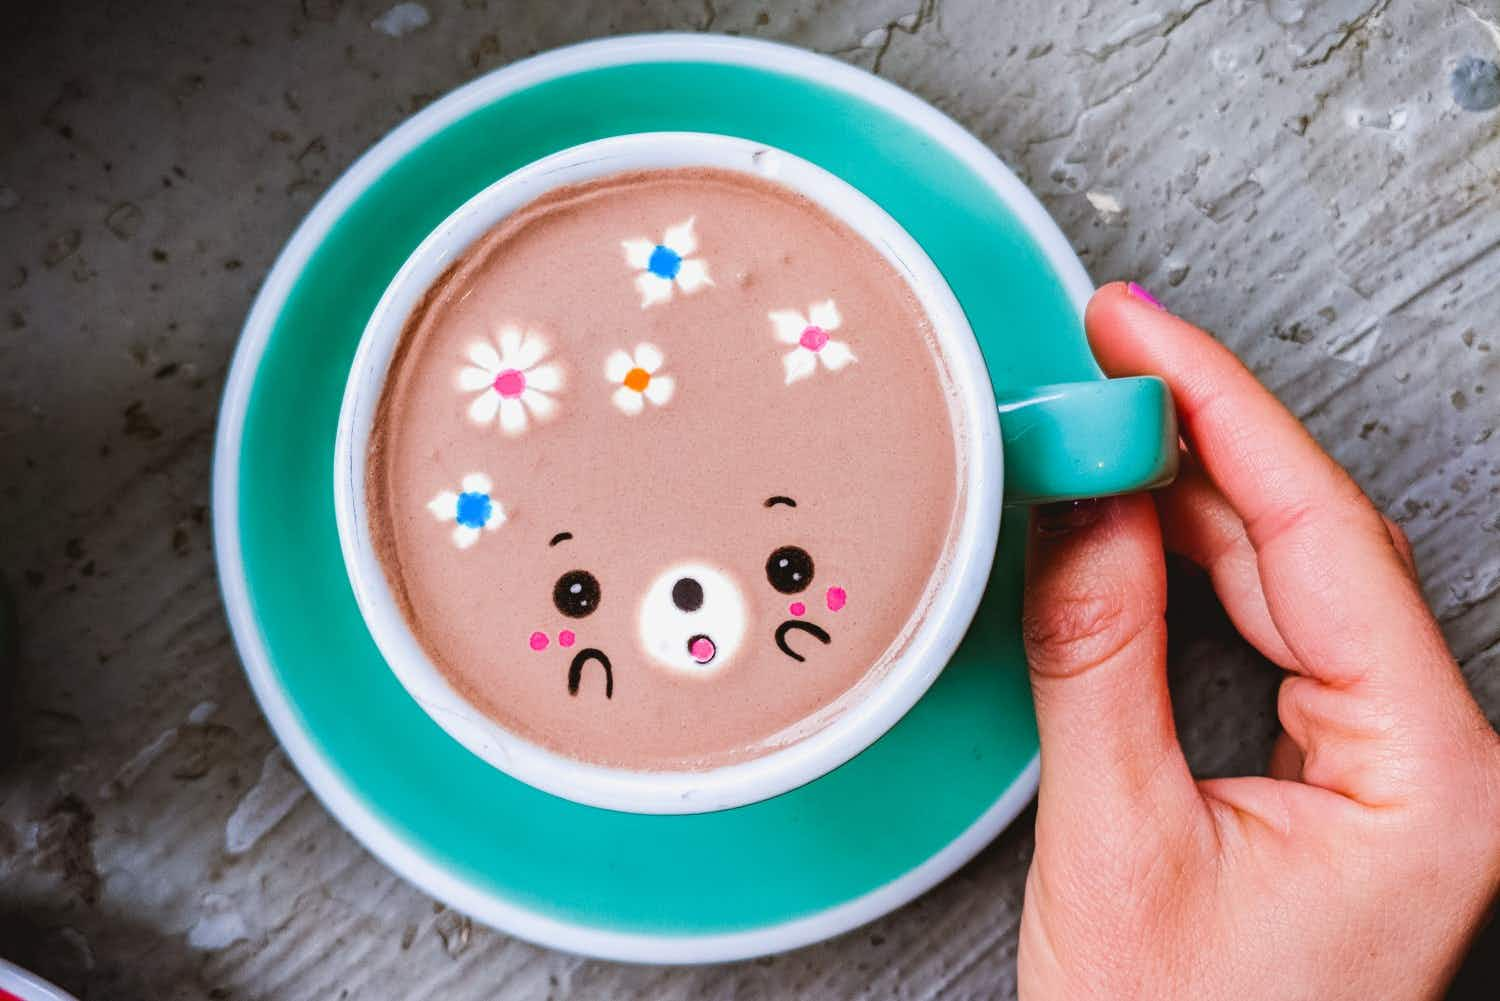 This New York café's adorable coffee art and funky desserts are an Instagram delight